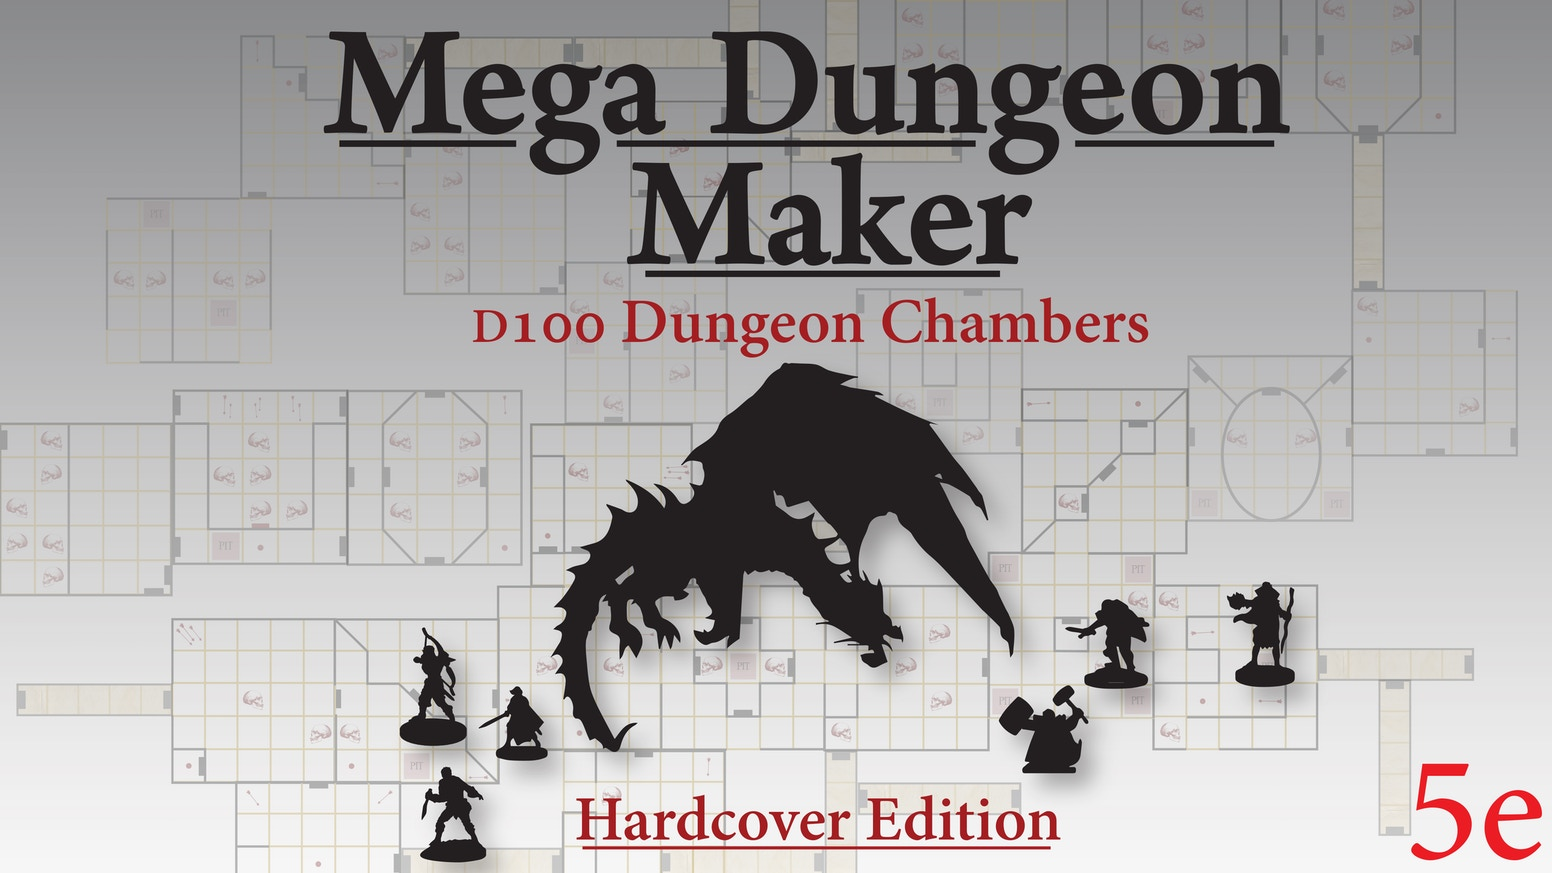 Hardcover book edition. Never make the same maze twice. Laced with enemies, traps, interactive doors, and pits.